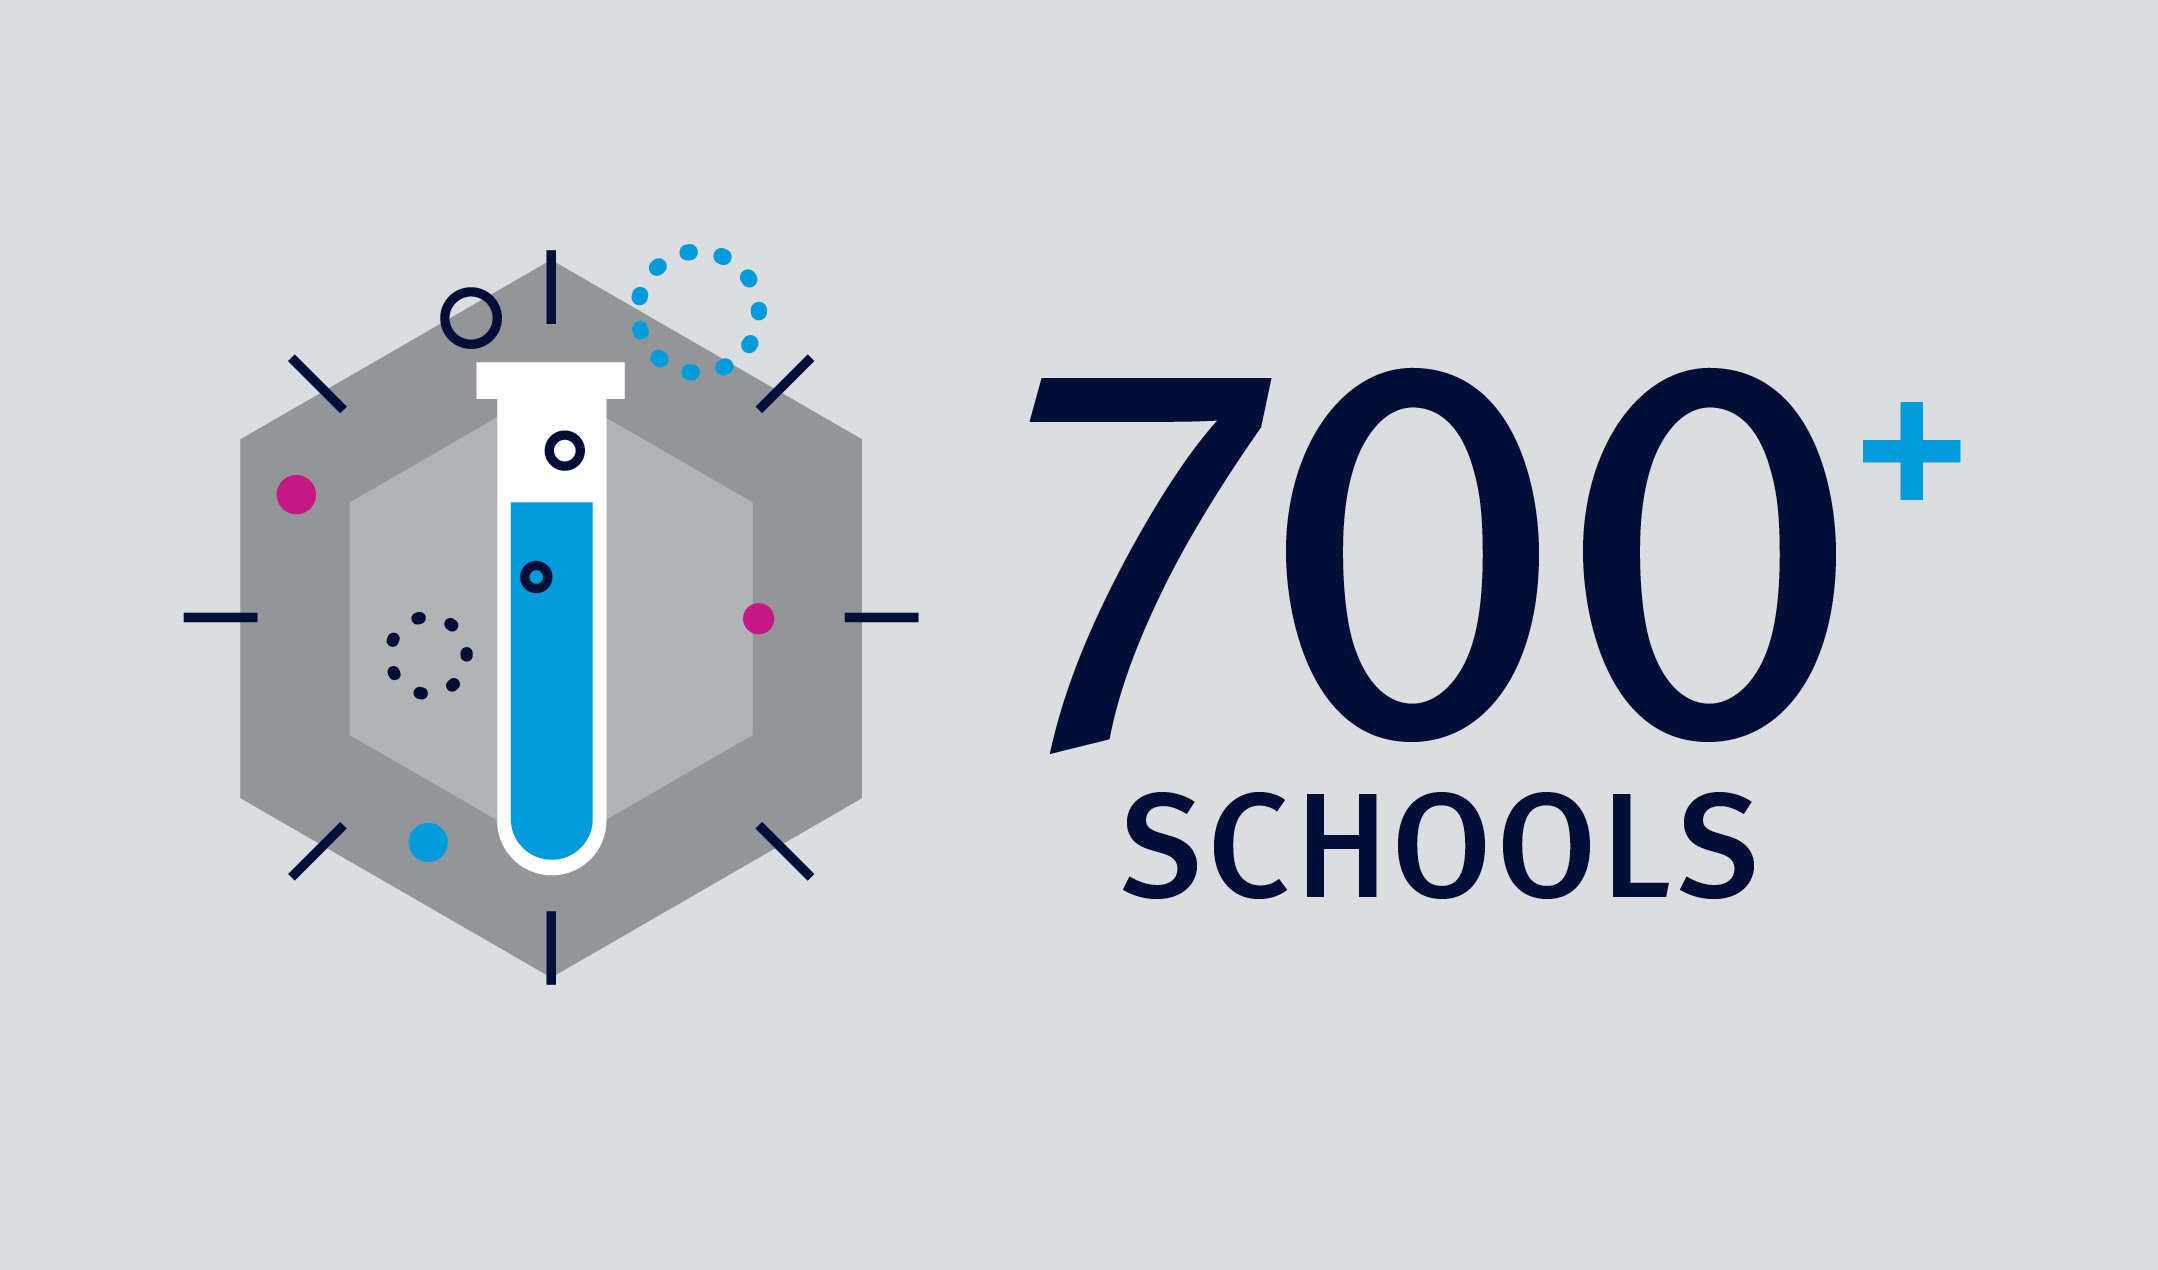 The Outreach Office worked with 700+ schools in 2013-14